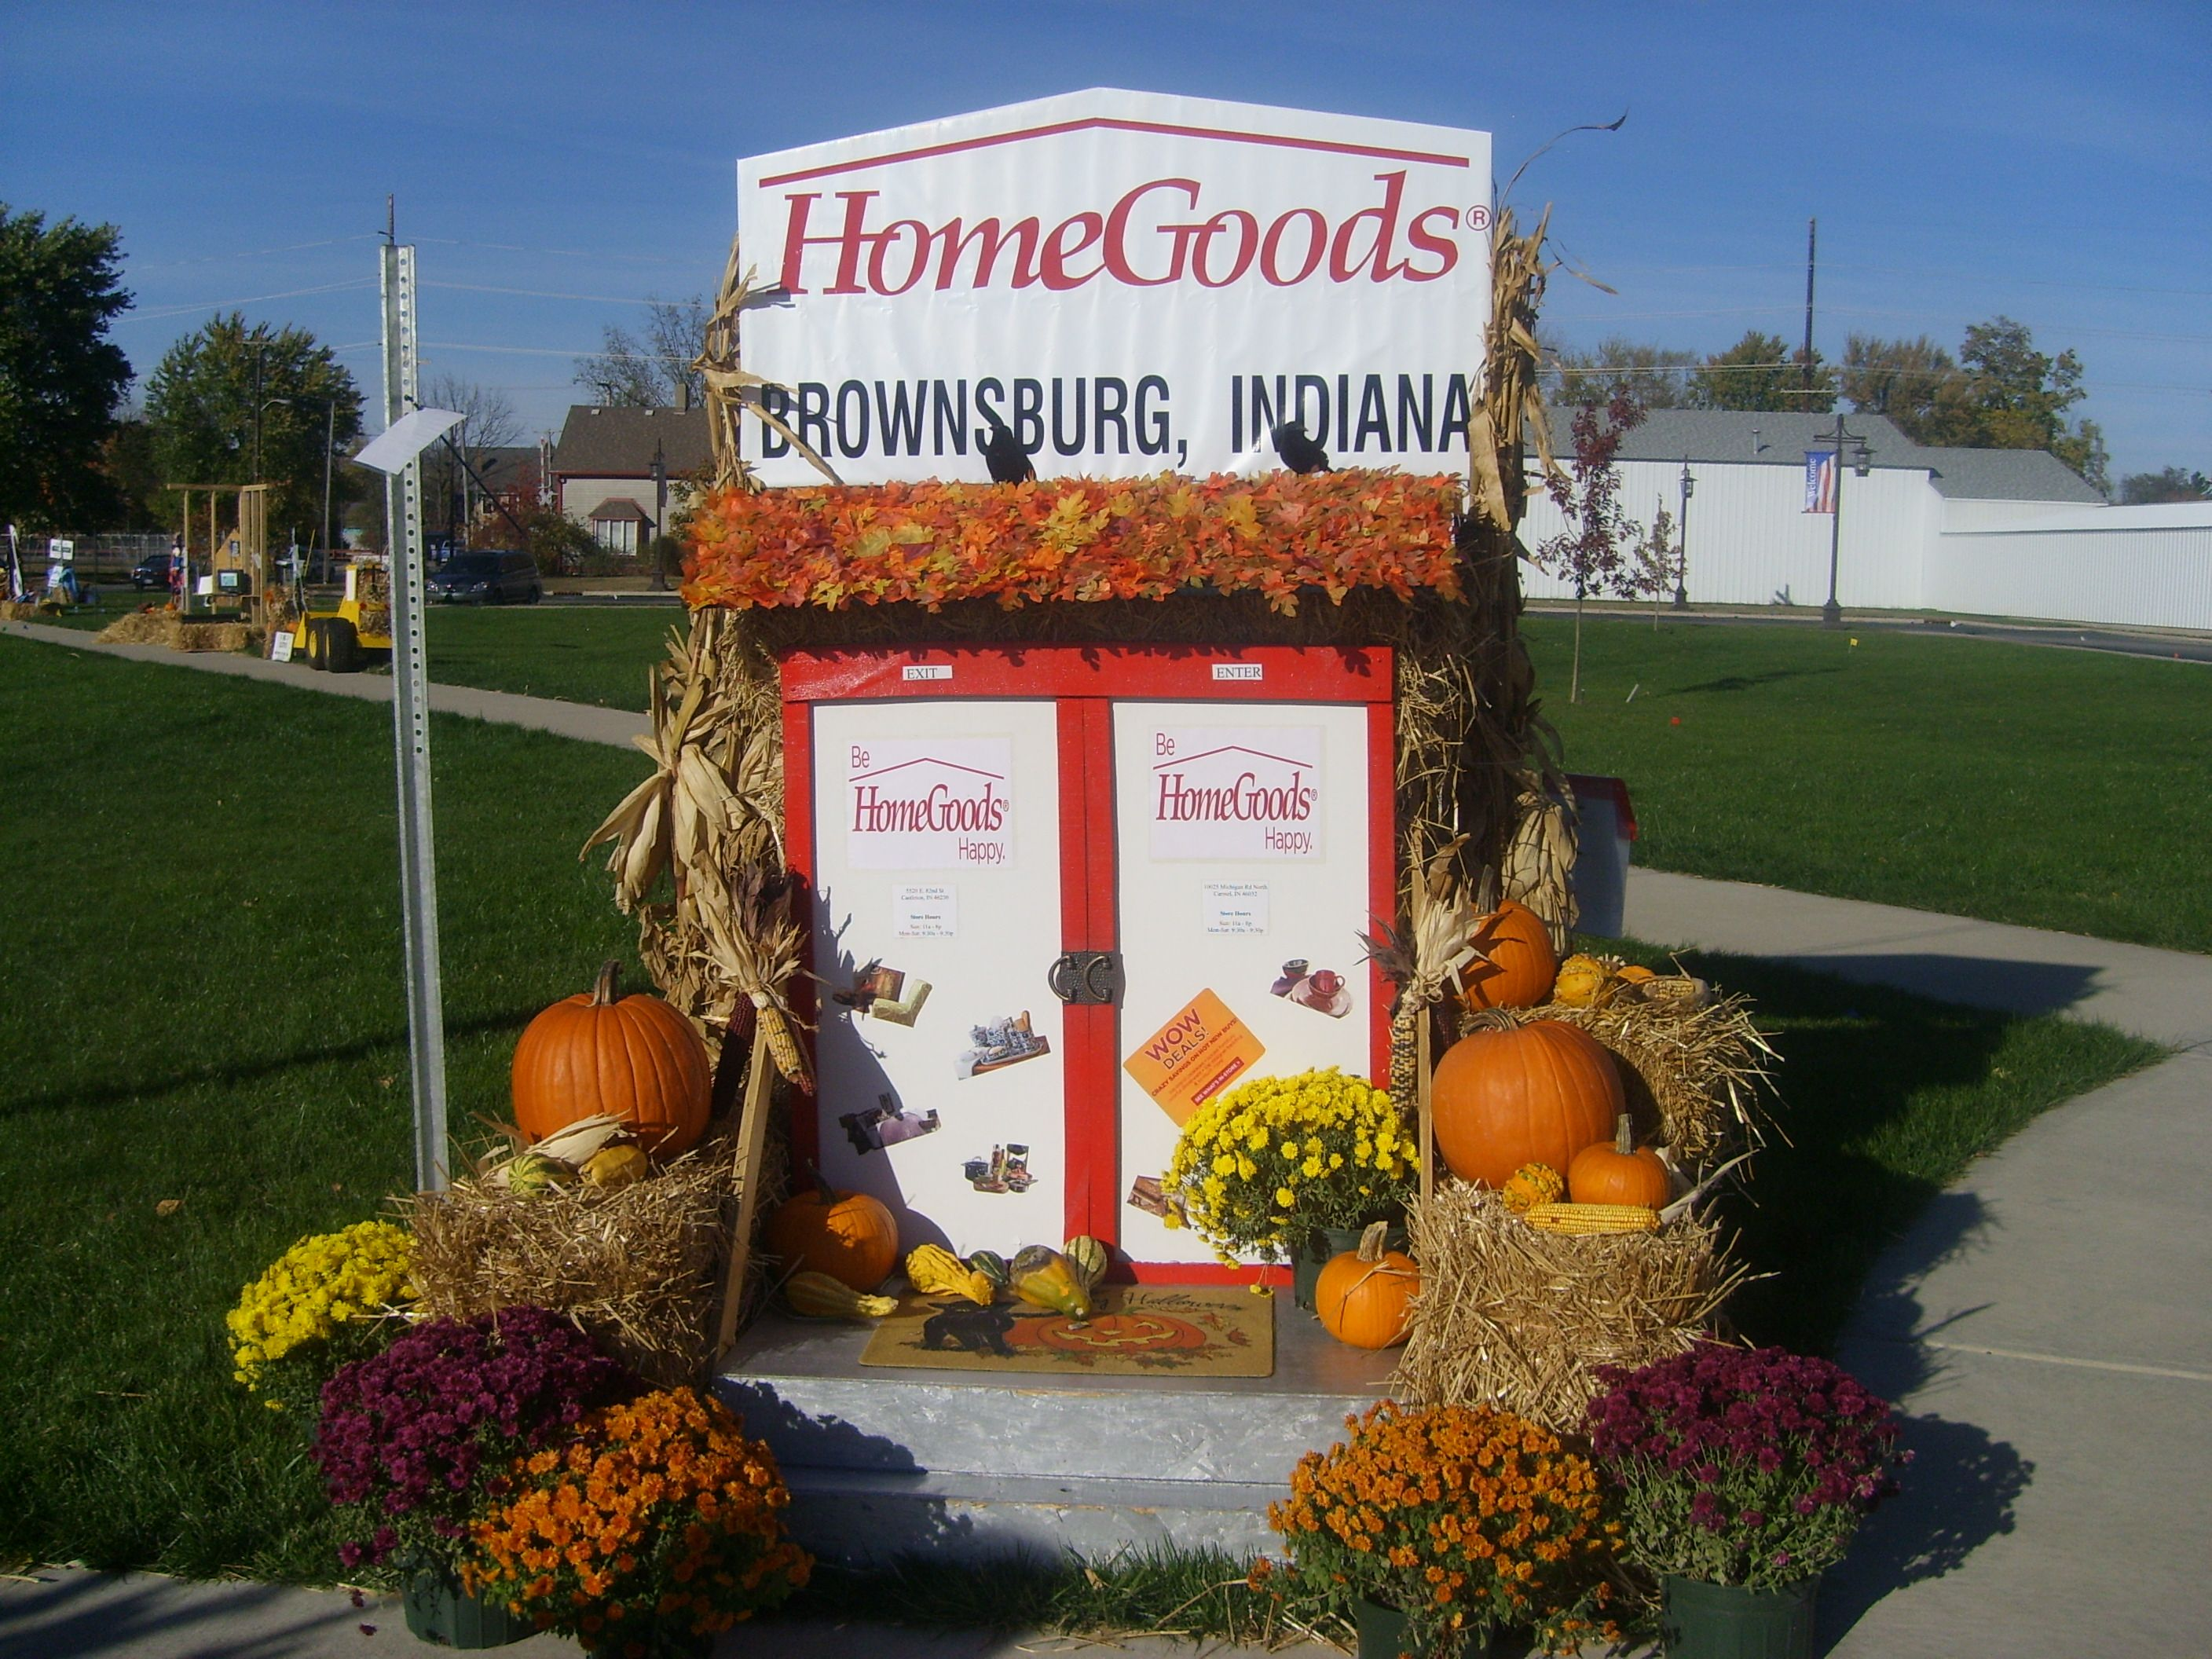 homegoods halloween display brownsburg indiana - Halloween Indiana